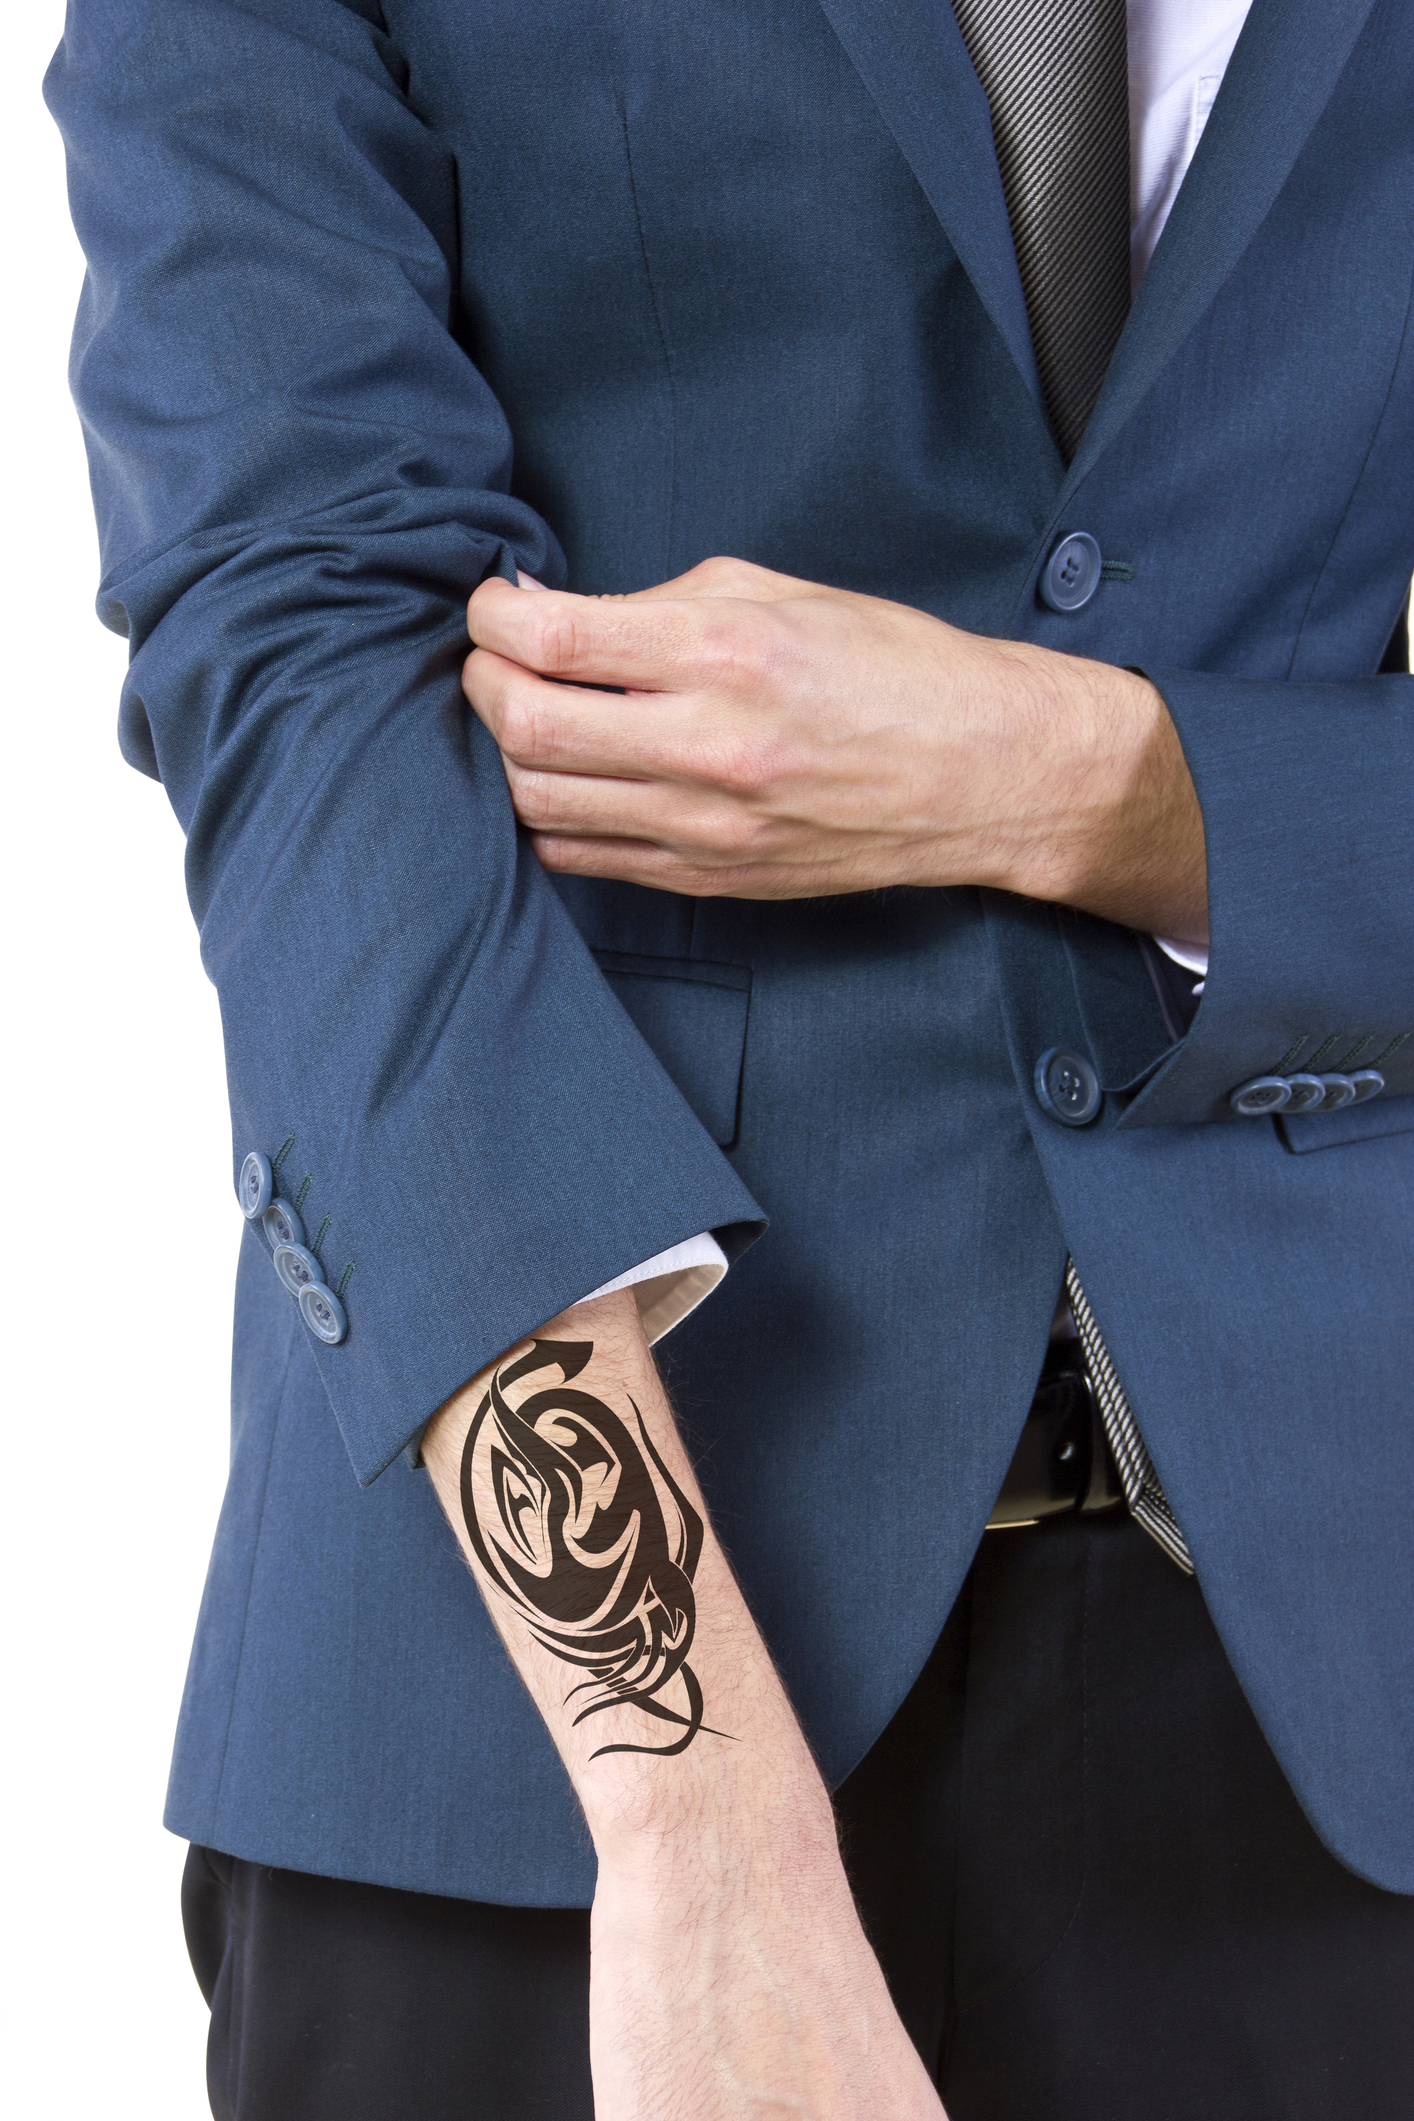 Are Tattoos Taboo In Hospitality?